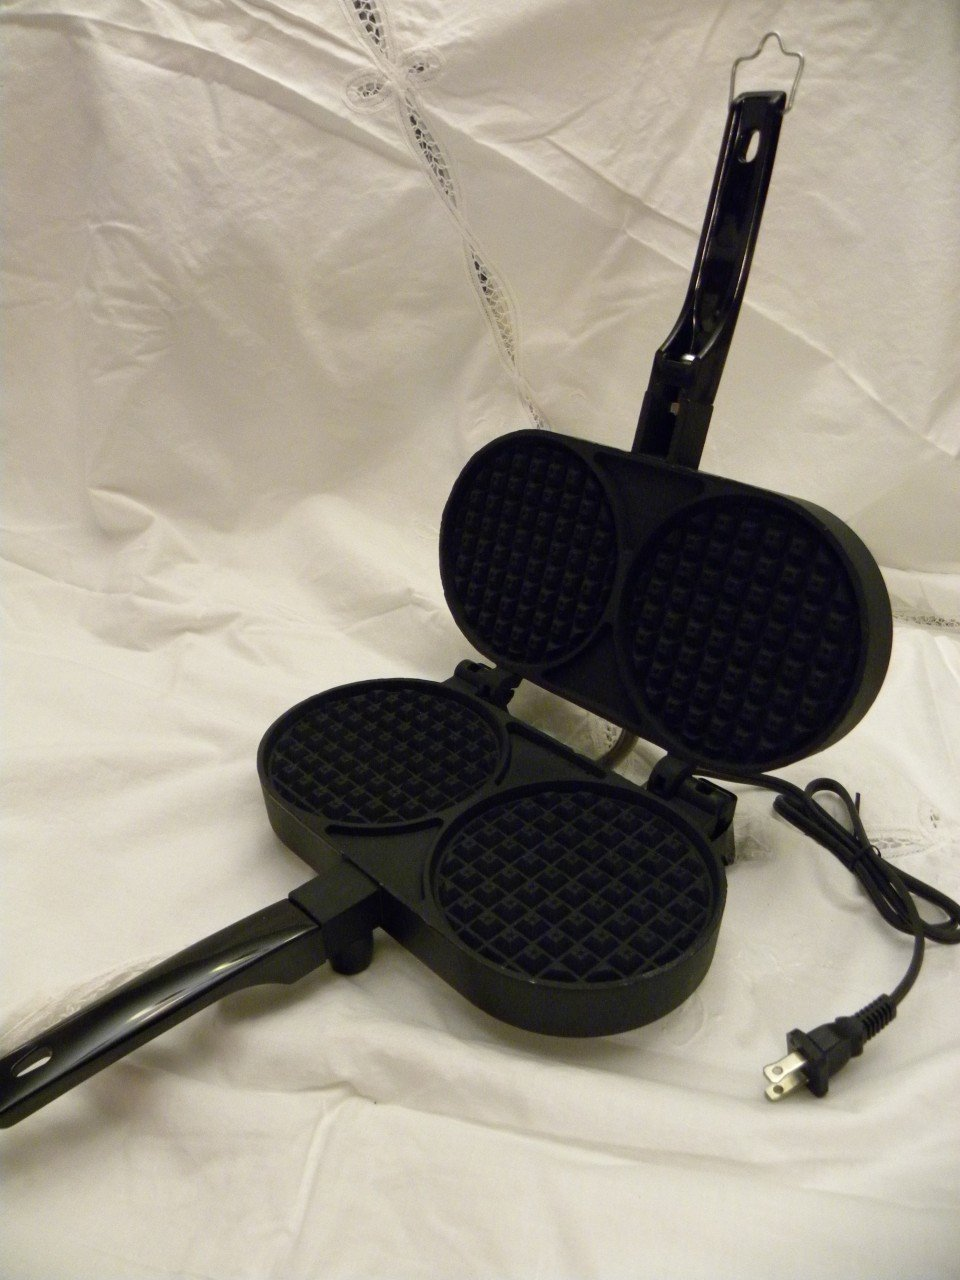 Palmer Electric Belgian Cookie Iron Waffler non stick